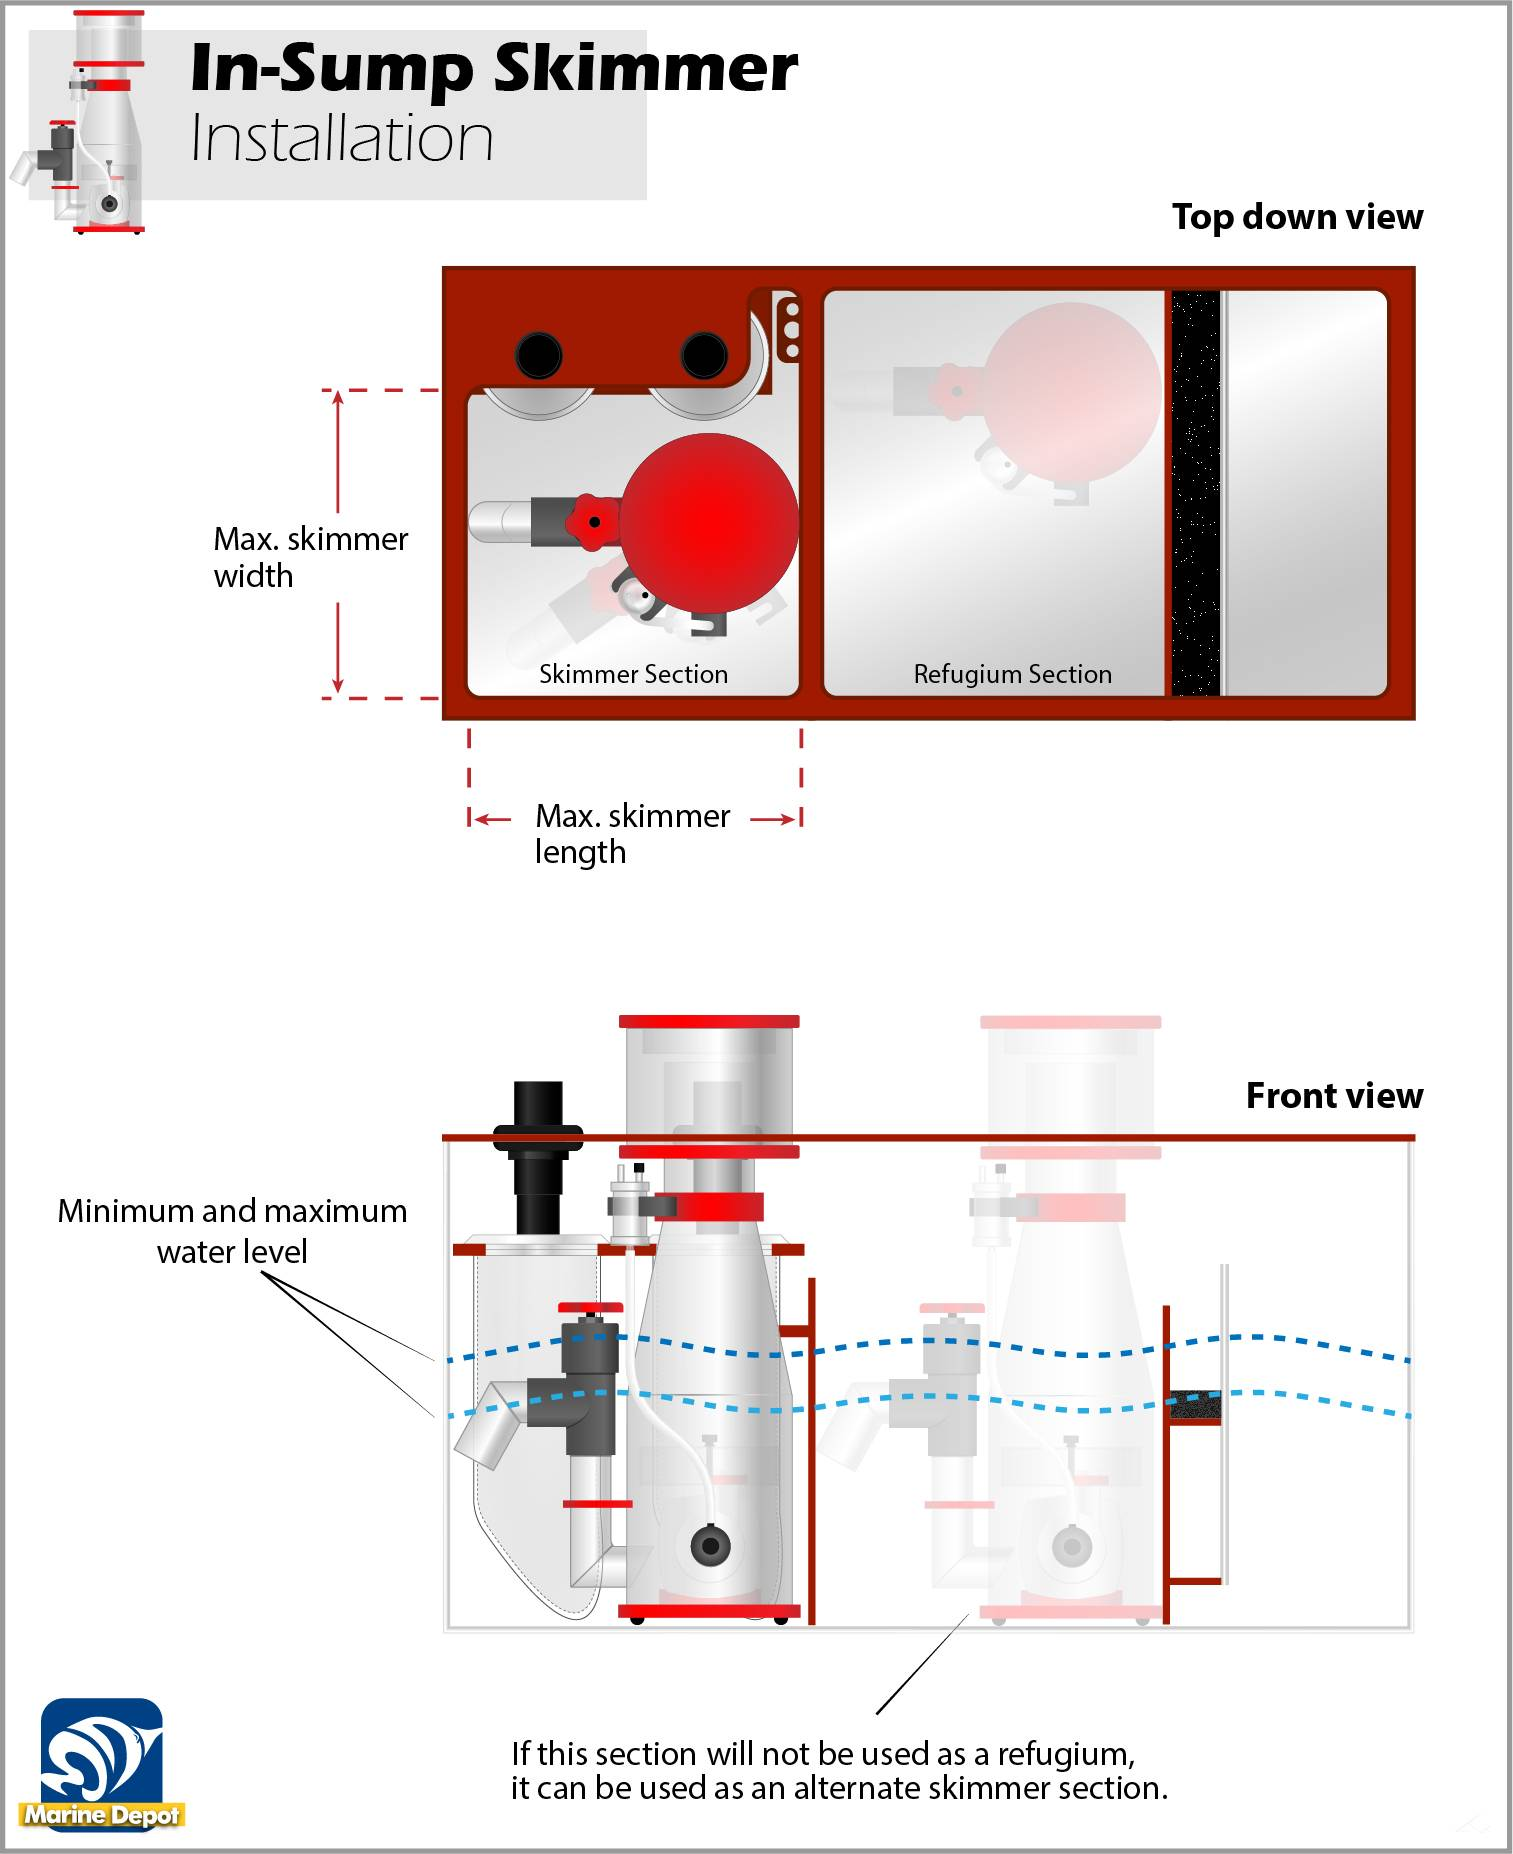 Infographic of requirements needed to install in-sump types of skimmers